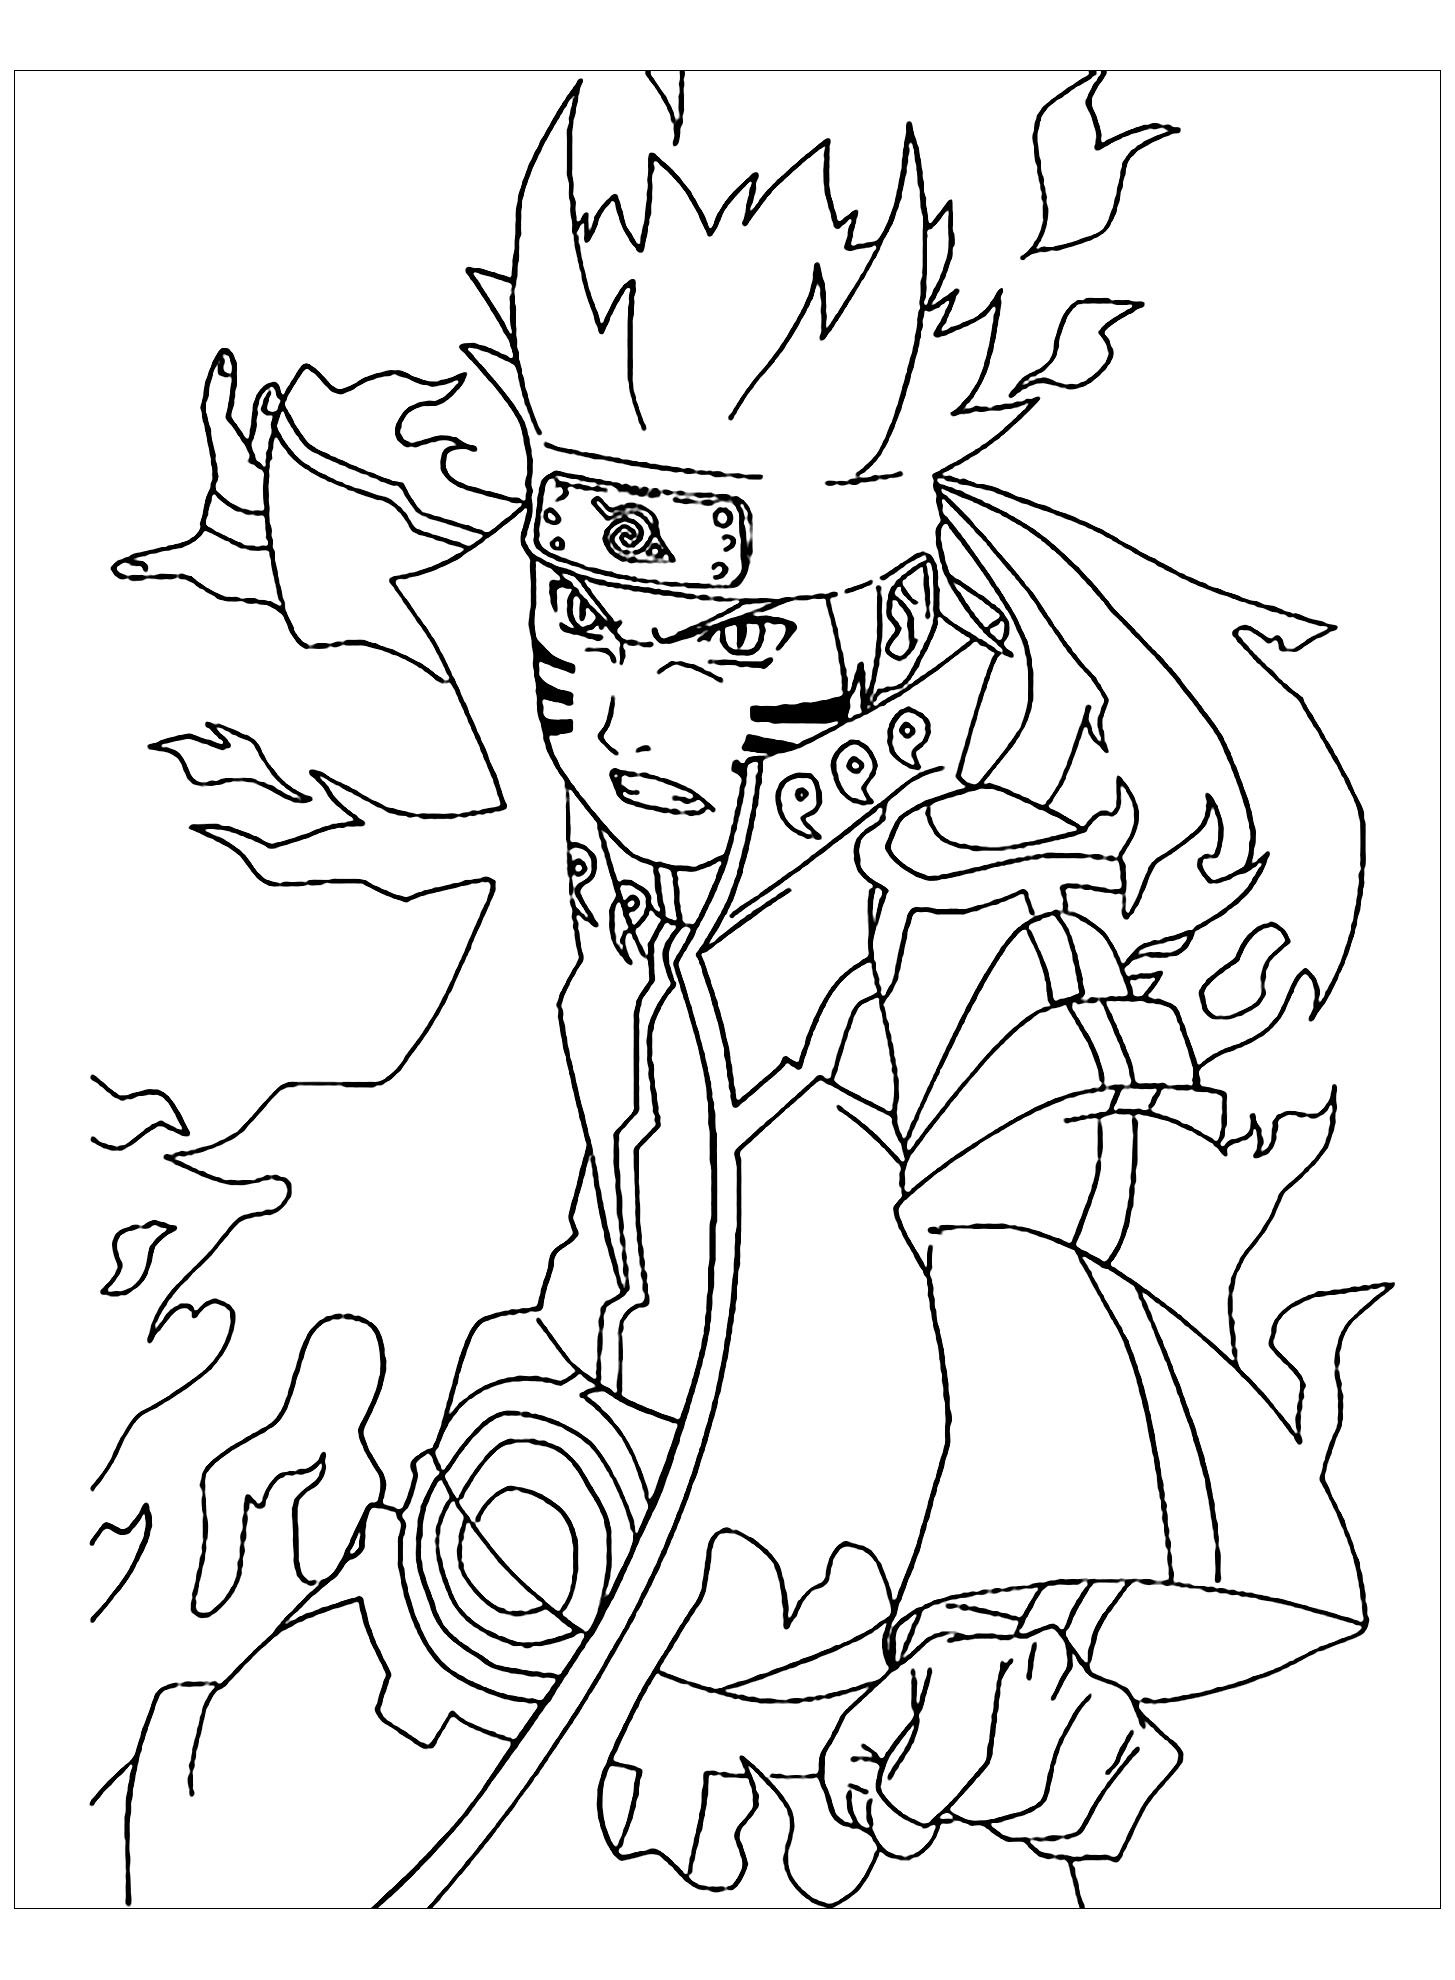 naruto coloring images printable naruto coloring pages to get your kids occupied coloring naruto images